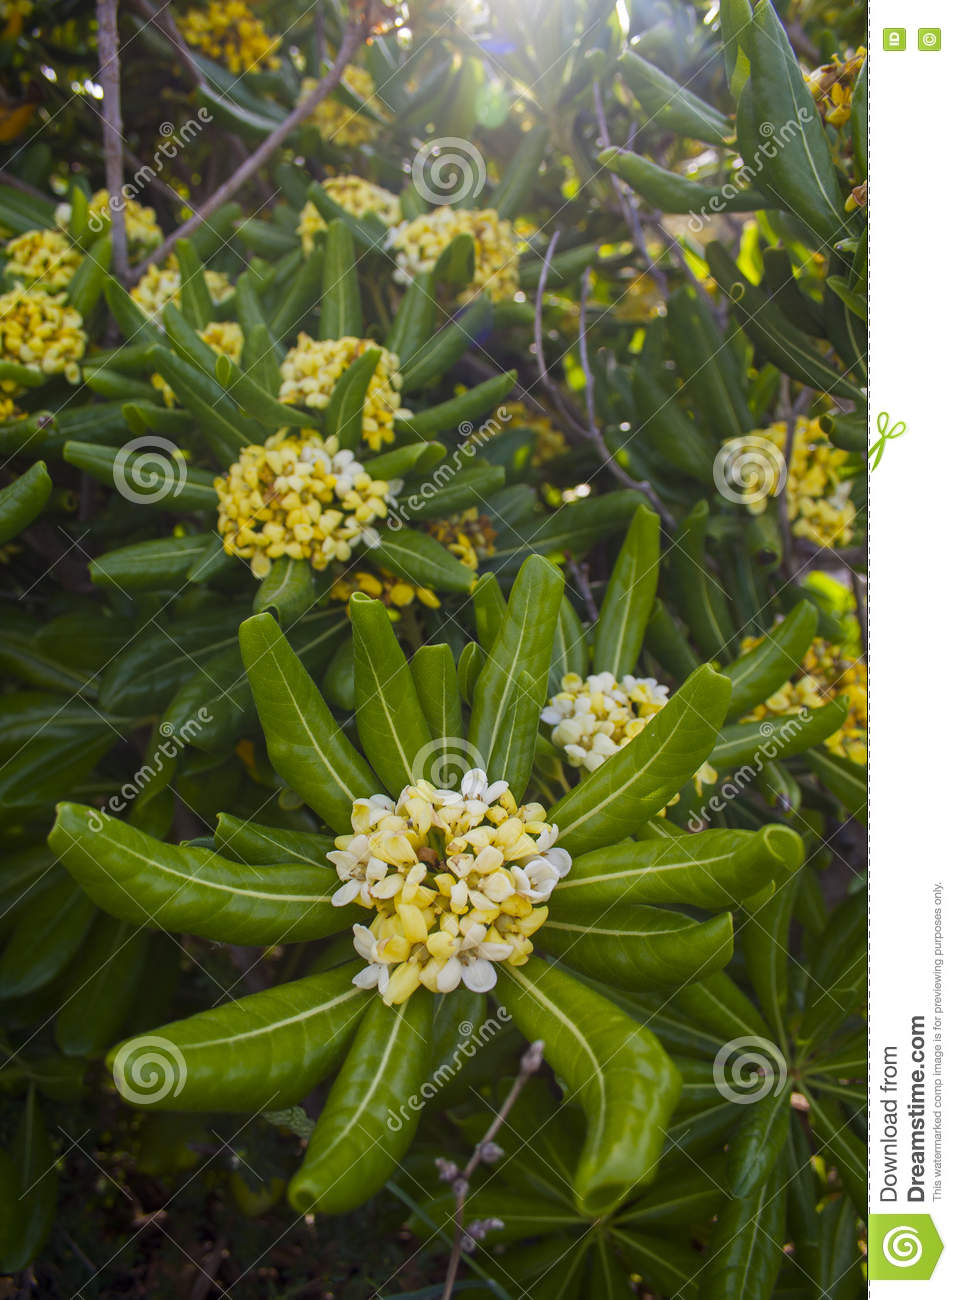 Beautiful tree with white yllow flowers and big leaves stock image beautiful tree with white yllow flowers and big leaves mightylinksfo